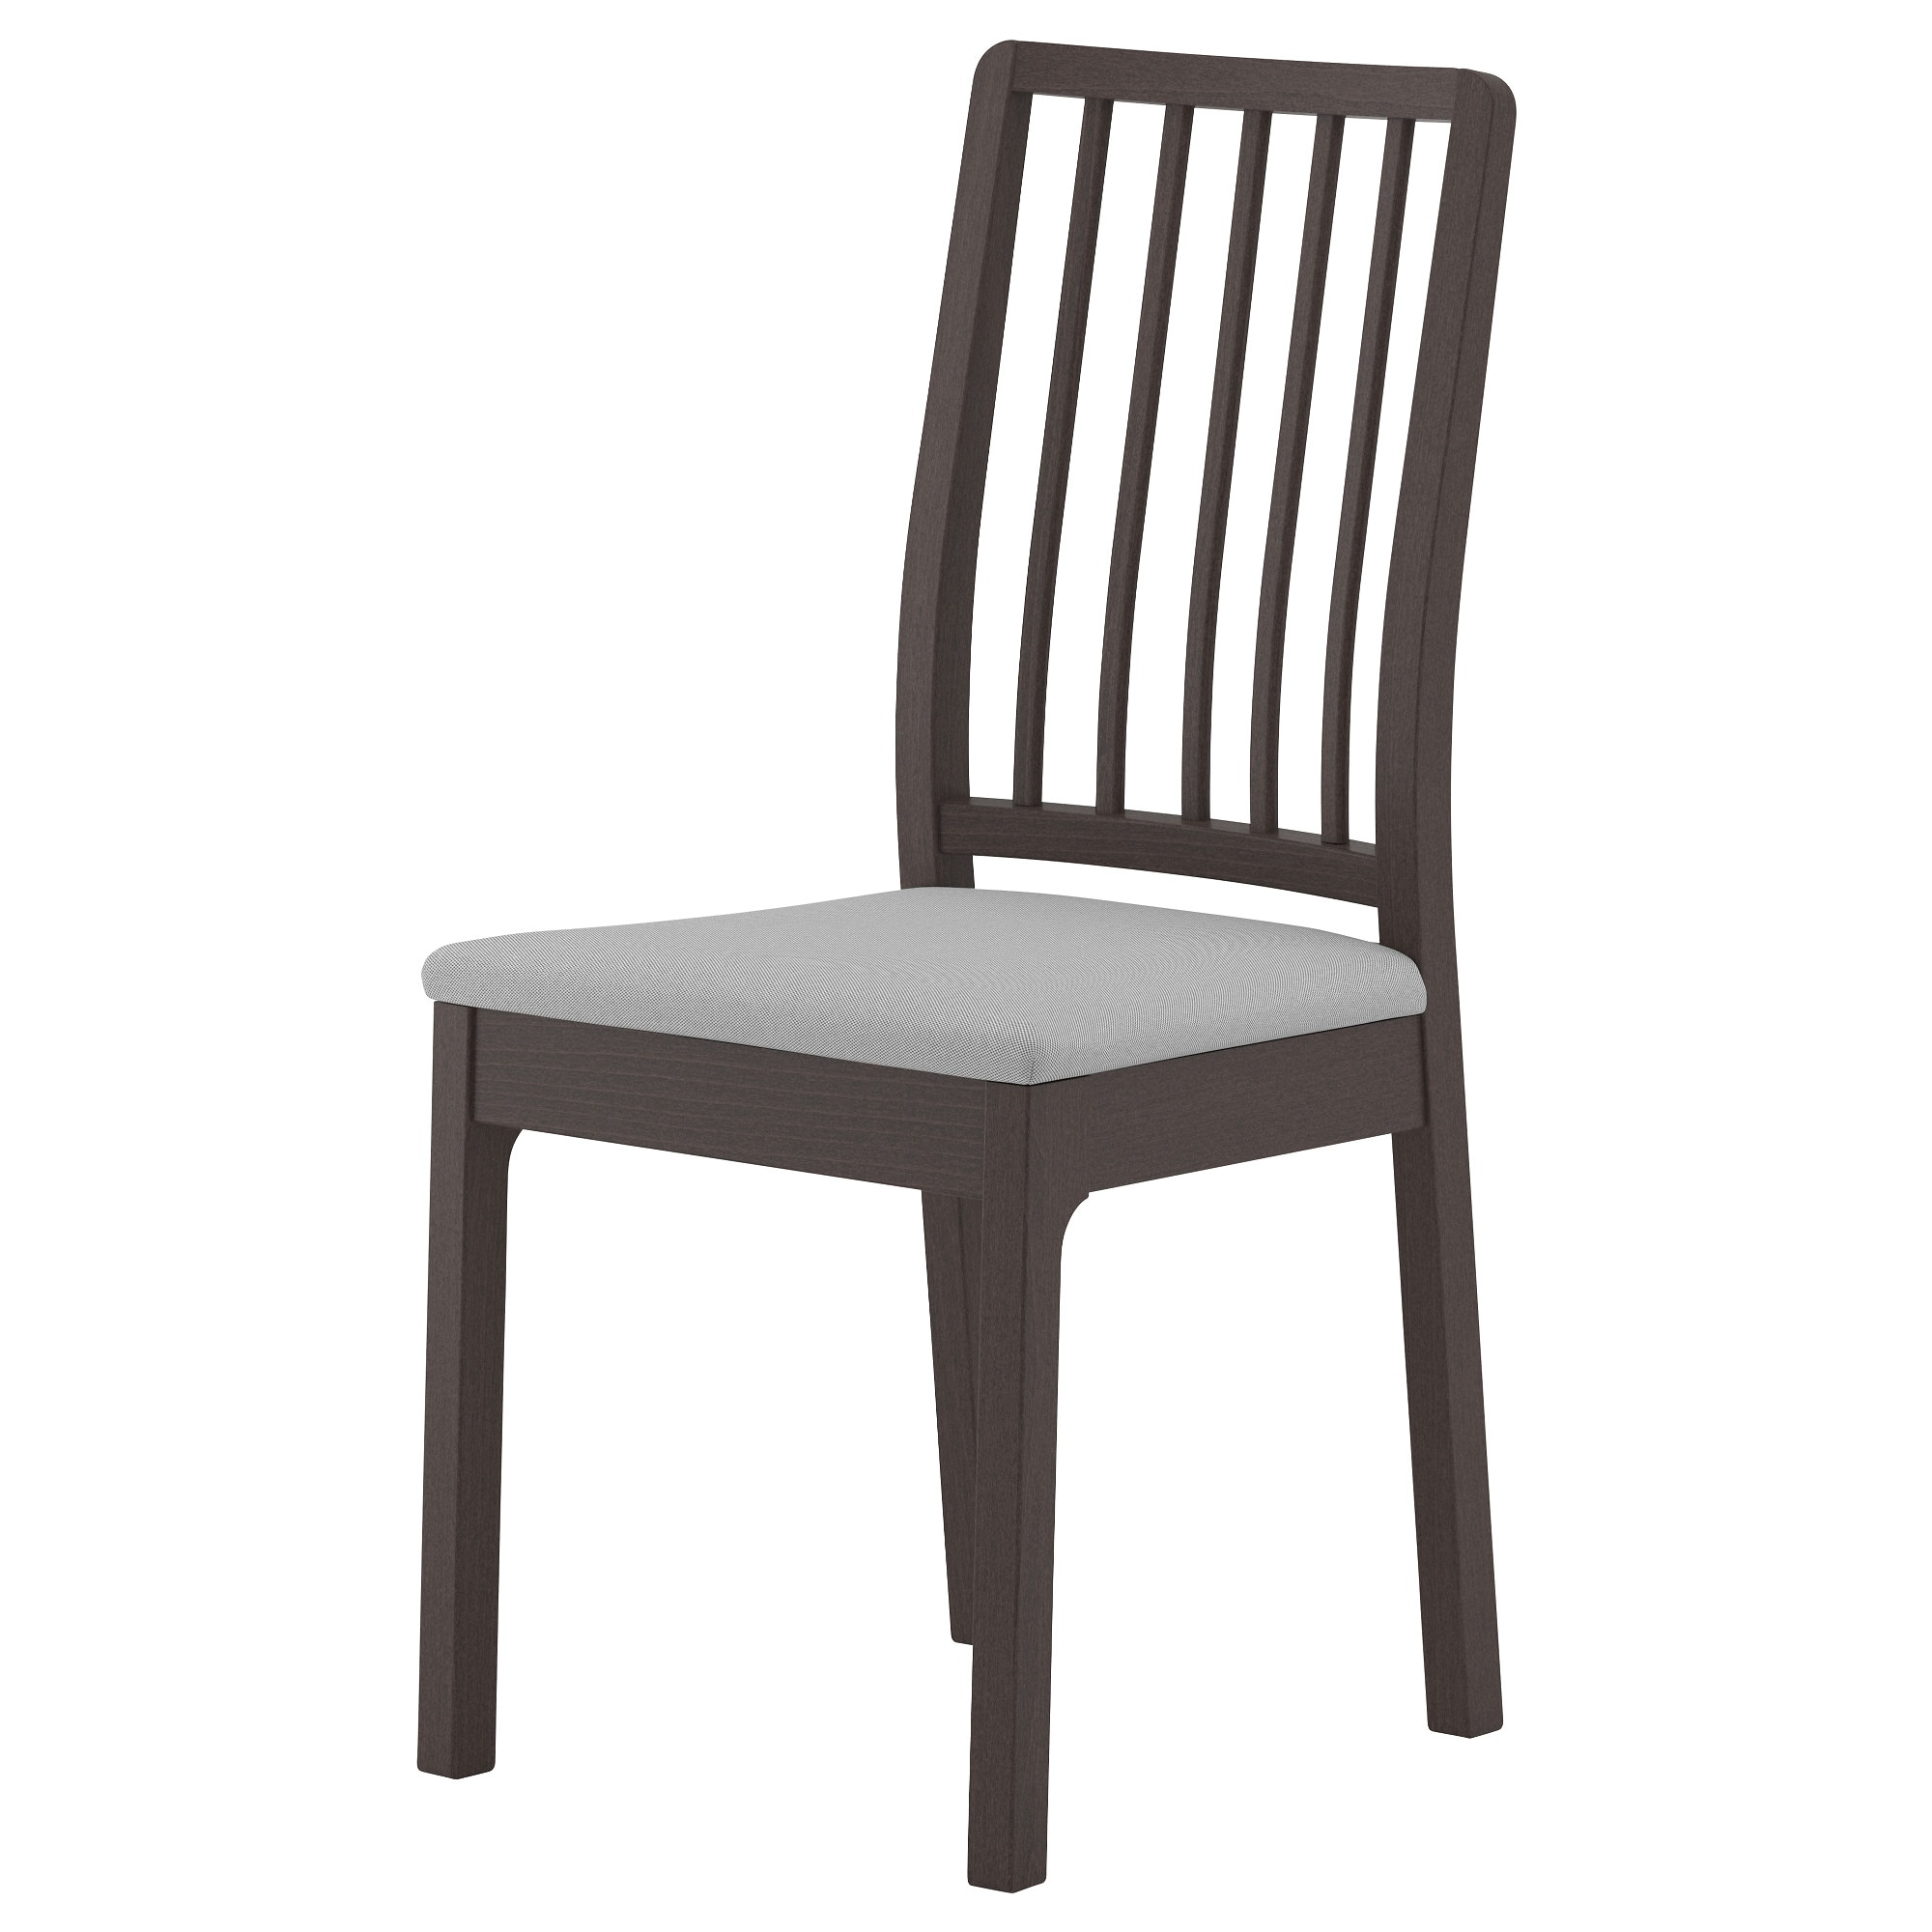 Charming EKEDALEN Chair, Dark Brown, Orrsta Light Gray Tested For: 243 Lb Width: